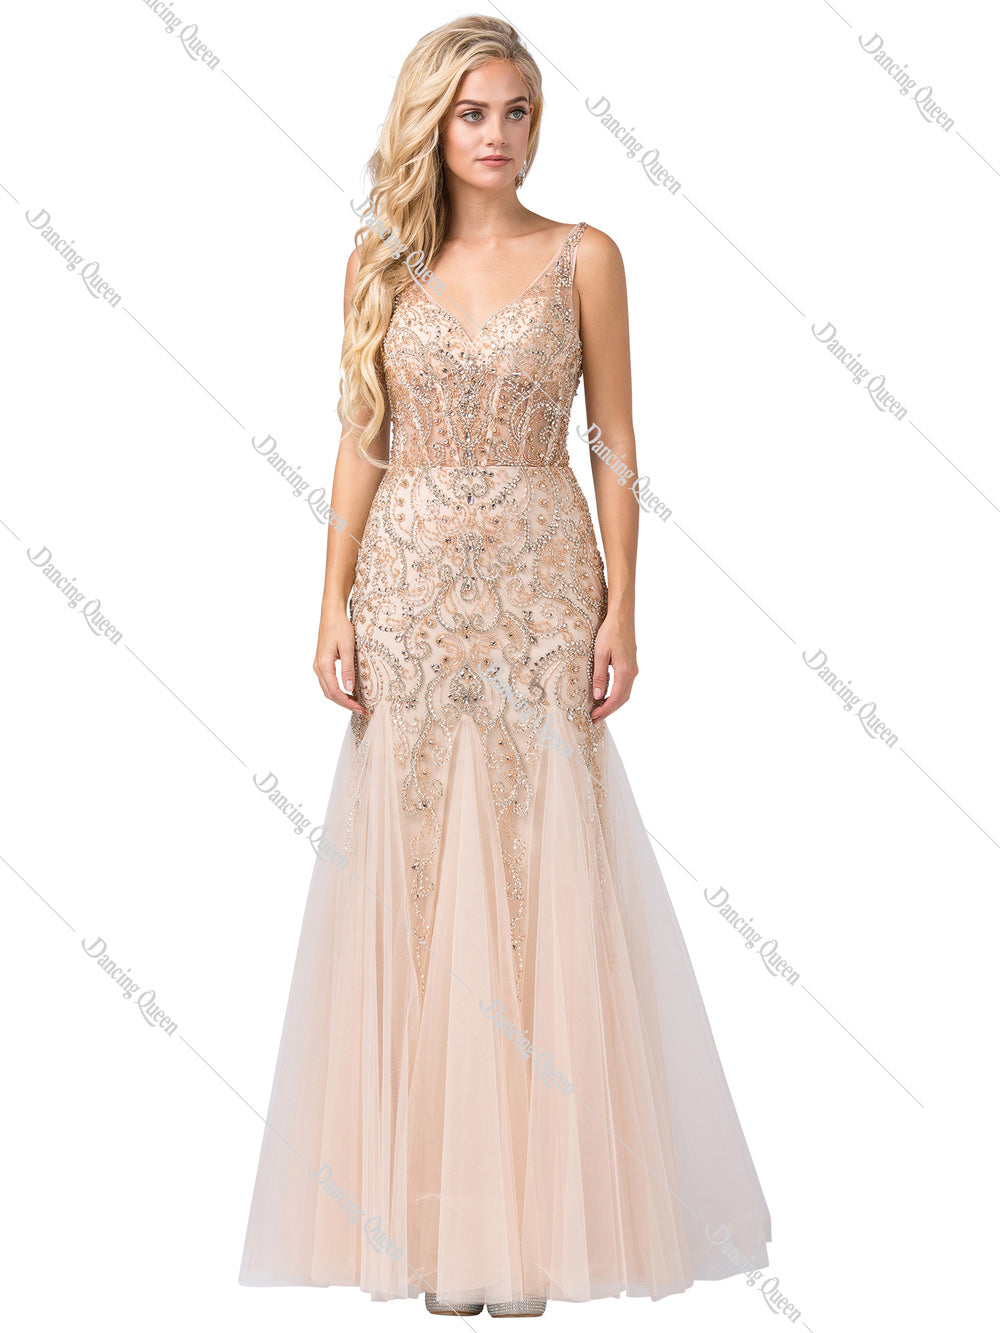 Dancing Queen DQ 2530 - Fully Beaded fit and flare V-Neck & Open back with Tulle Skirt - Diggz Prom